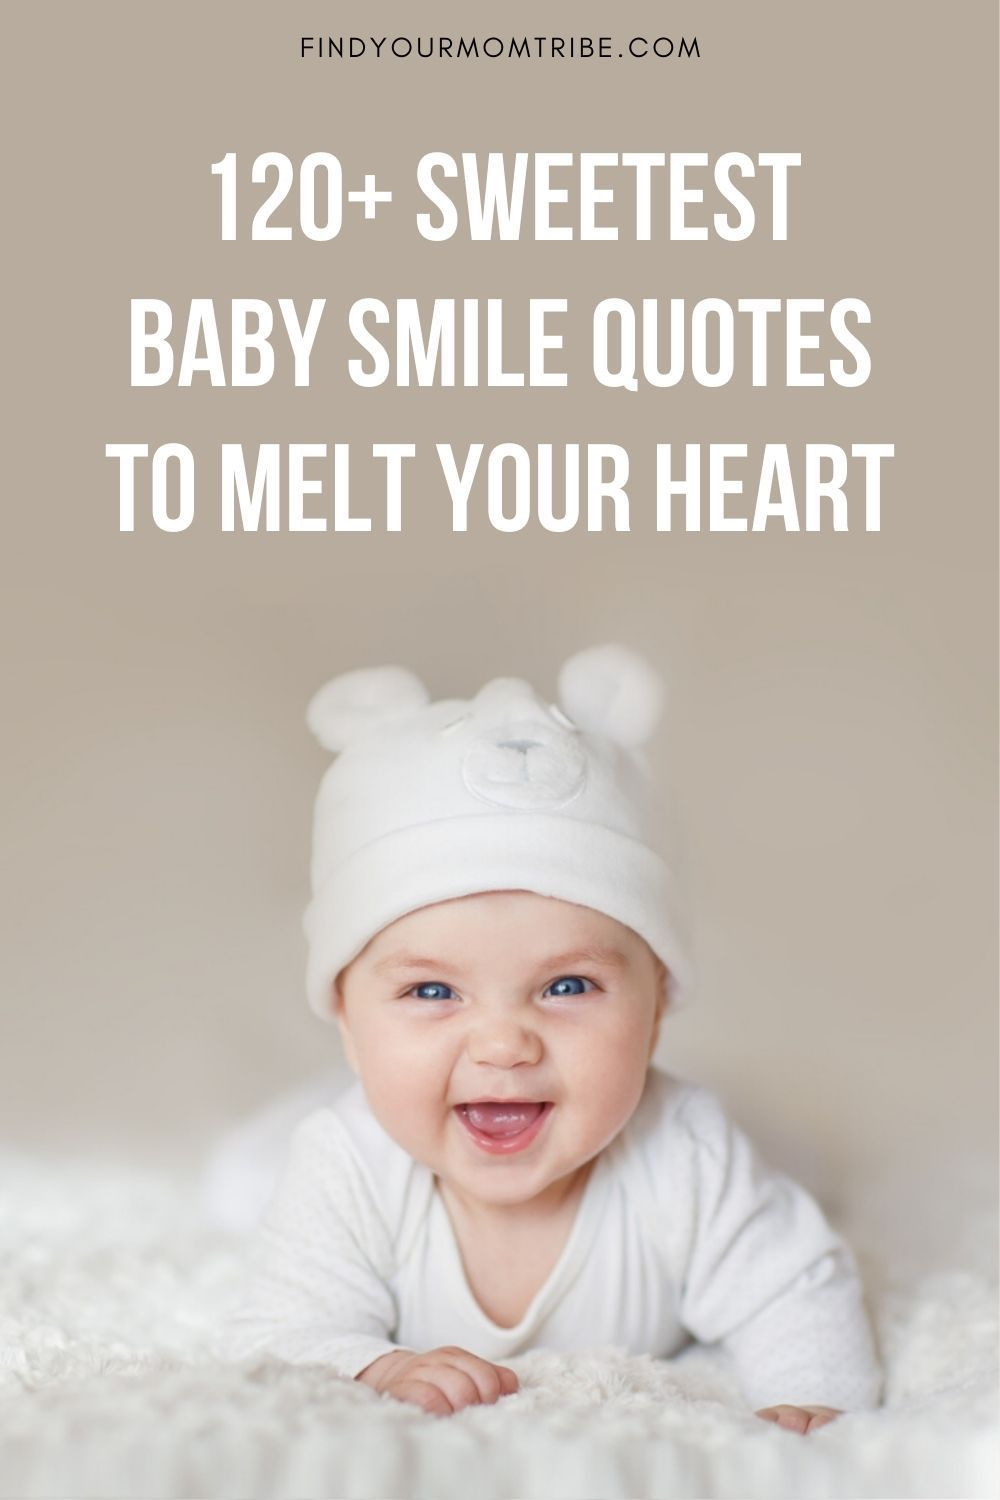 120 Sweetest Baby Smile Quotes To Melt Your Heart Baby Smile Quotes Cute Baby Quotes Baby Smiles